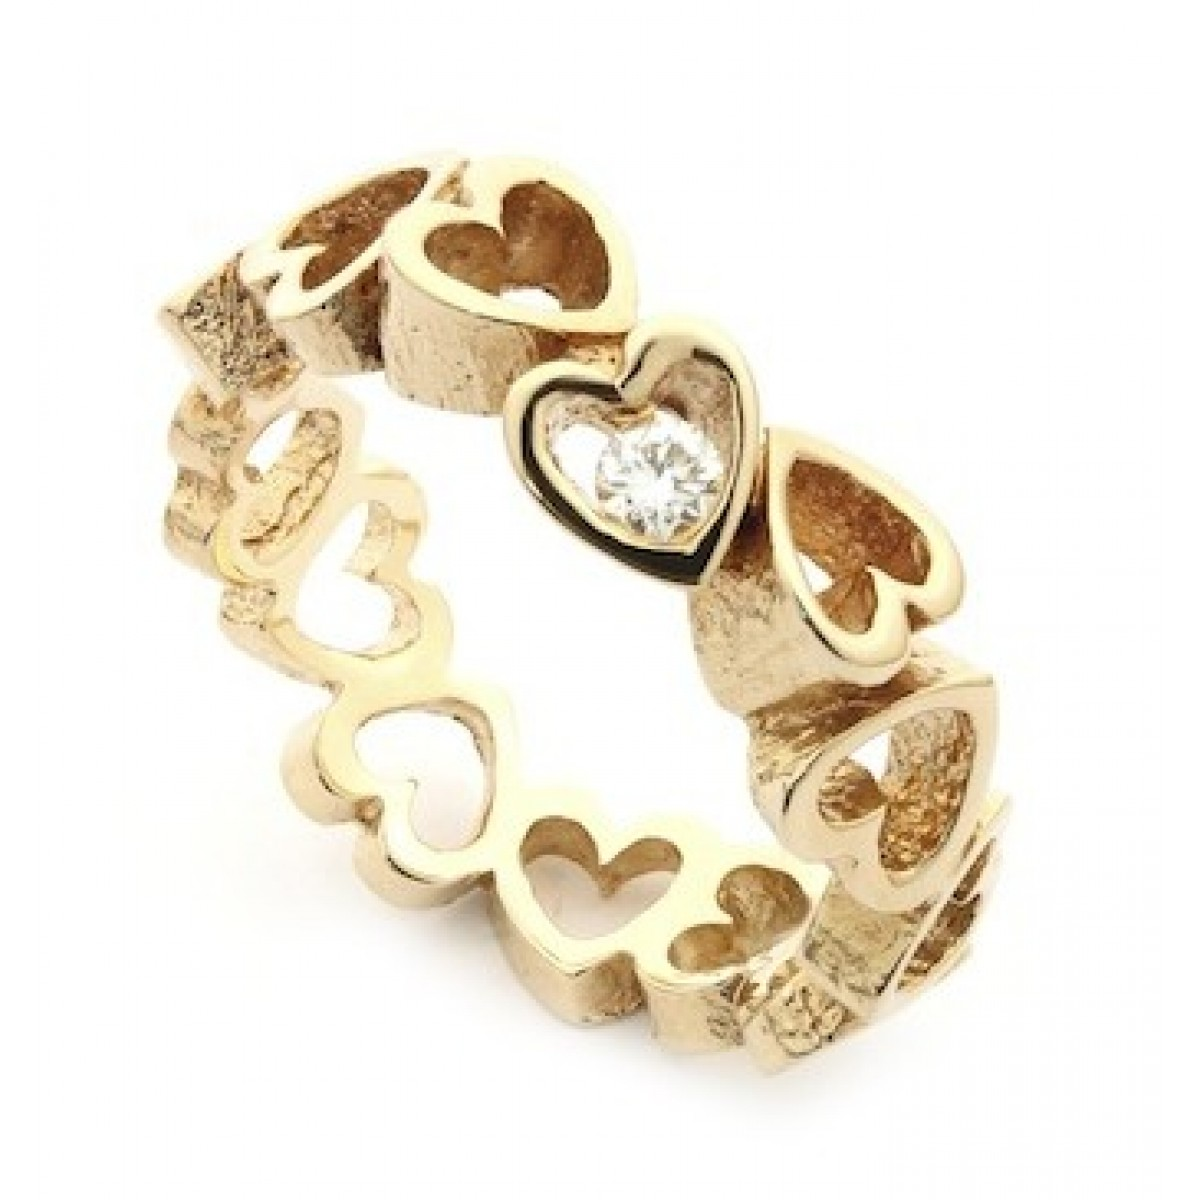 Per Borup OPEN YOUR HEART ring 884RX 14 kt guld-3